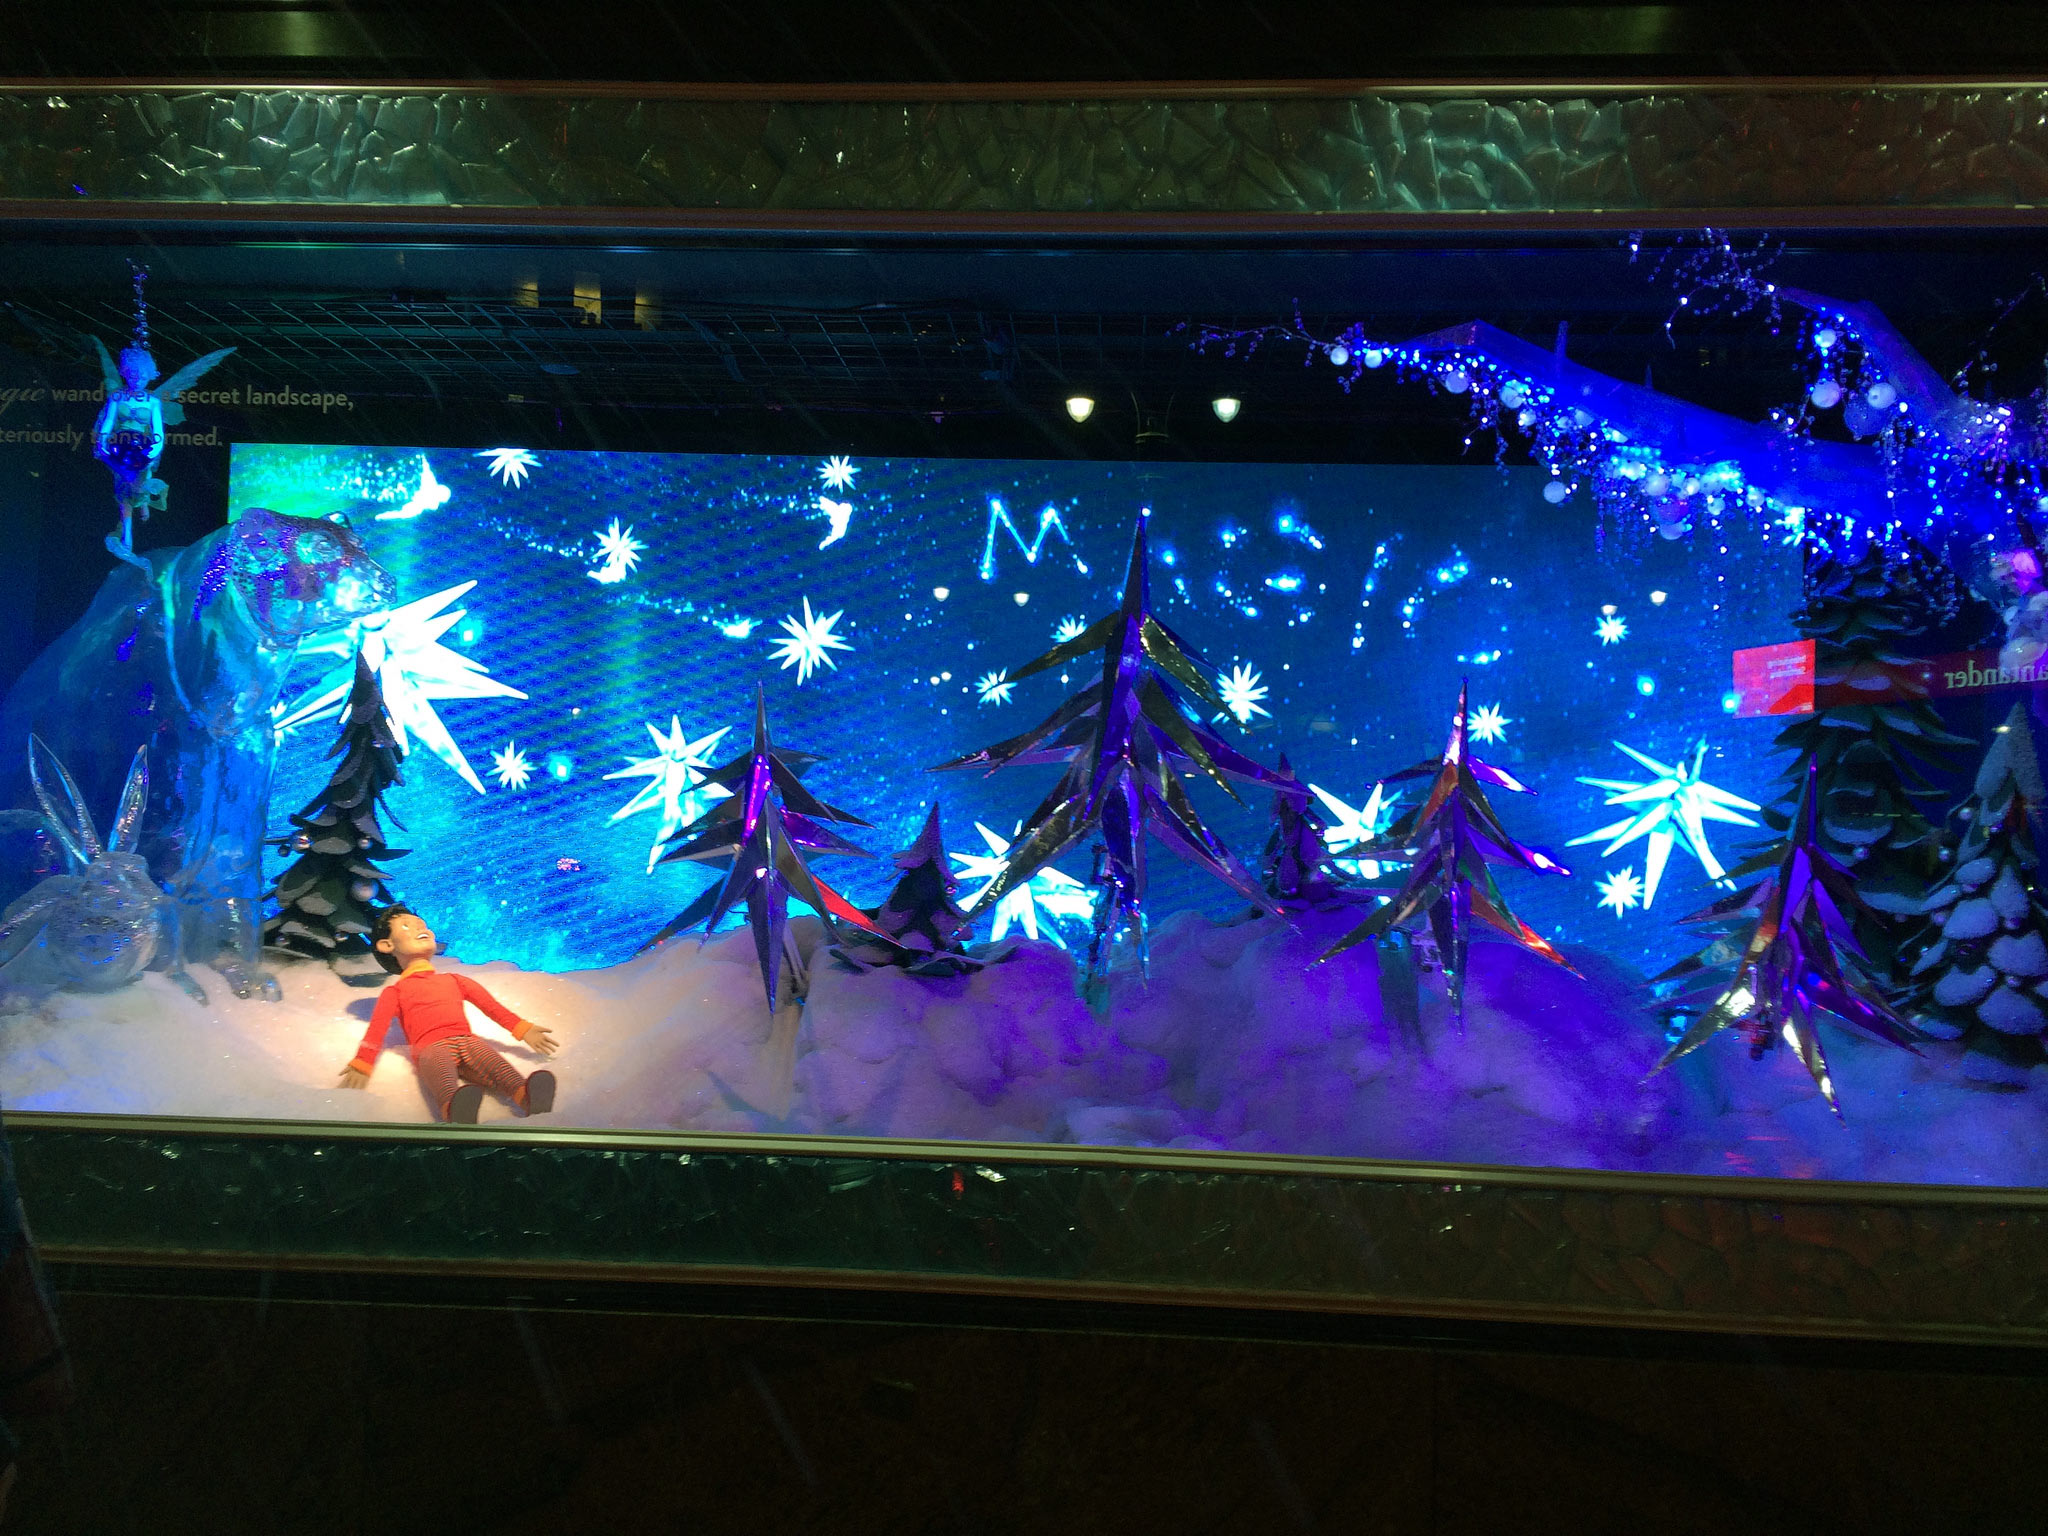 Macy's interactive holiday window display in New York.